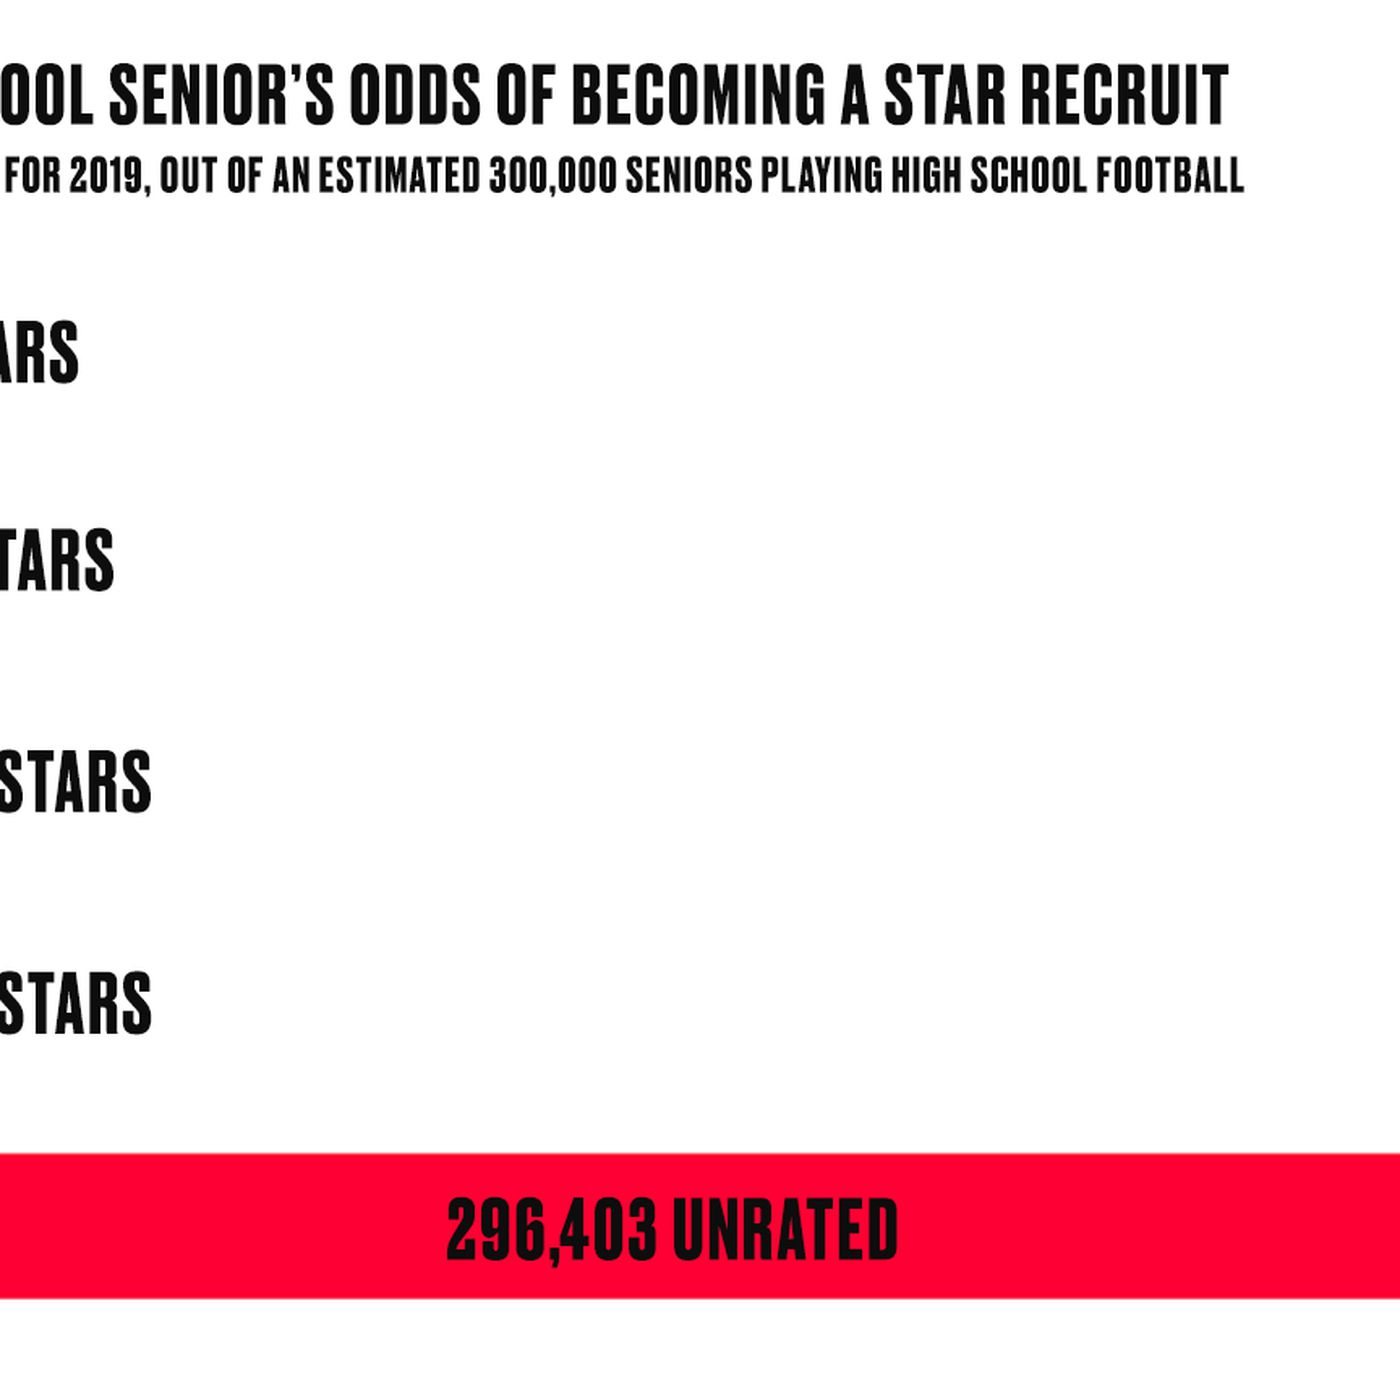 How Rare It Is To Be A 5 Star College Football Recruit Sbnation Com